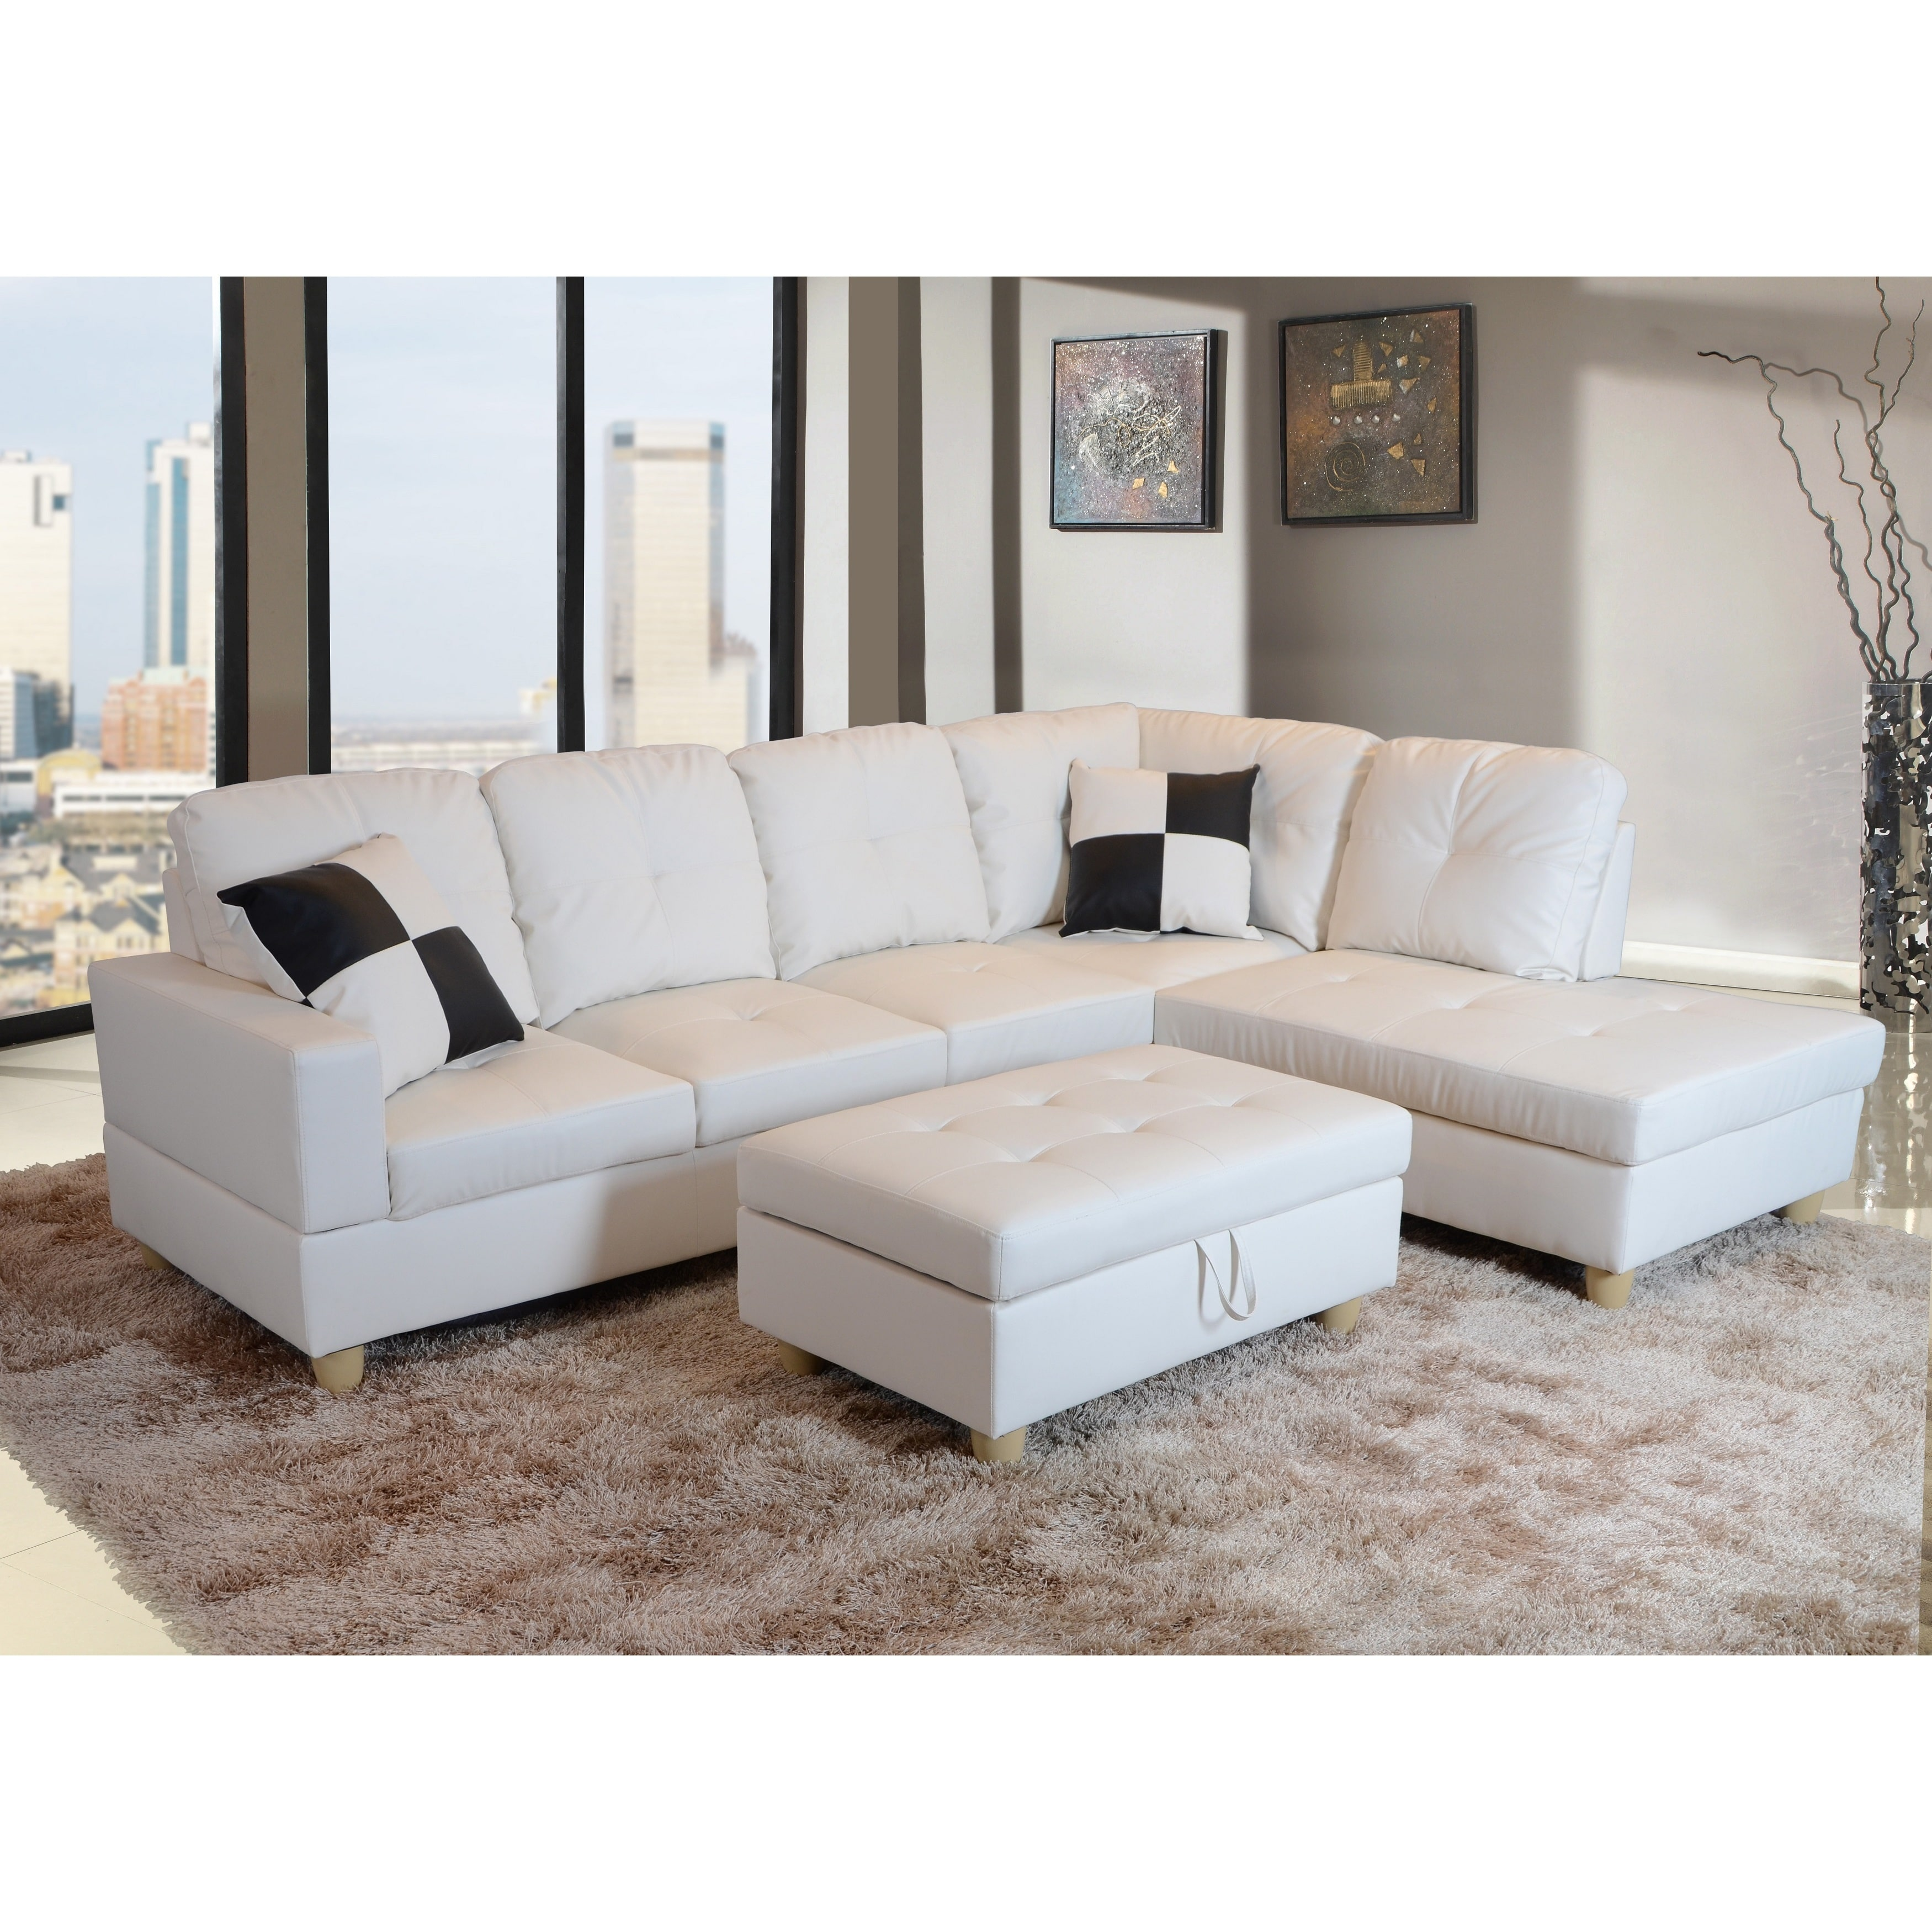 Life Style Furniture Inc. Urbania White Right Hand Facing Sectional